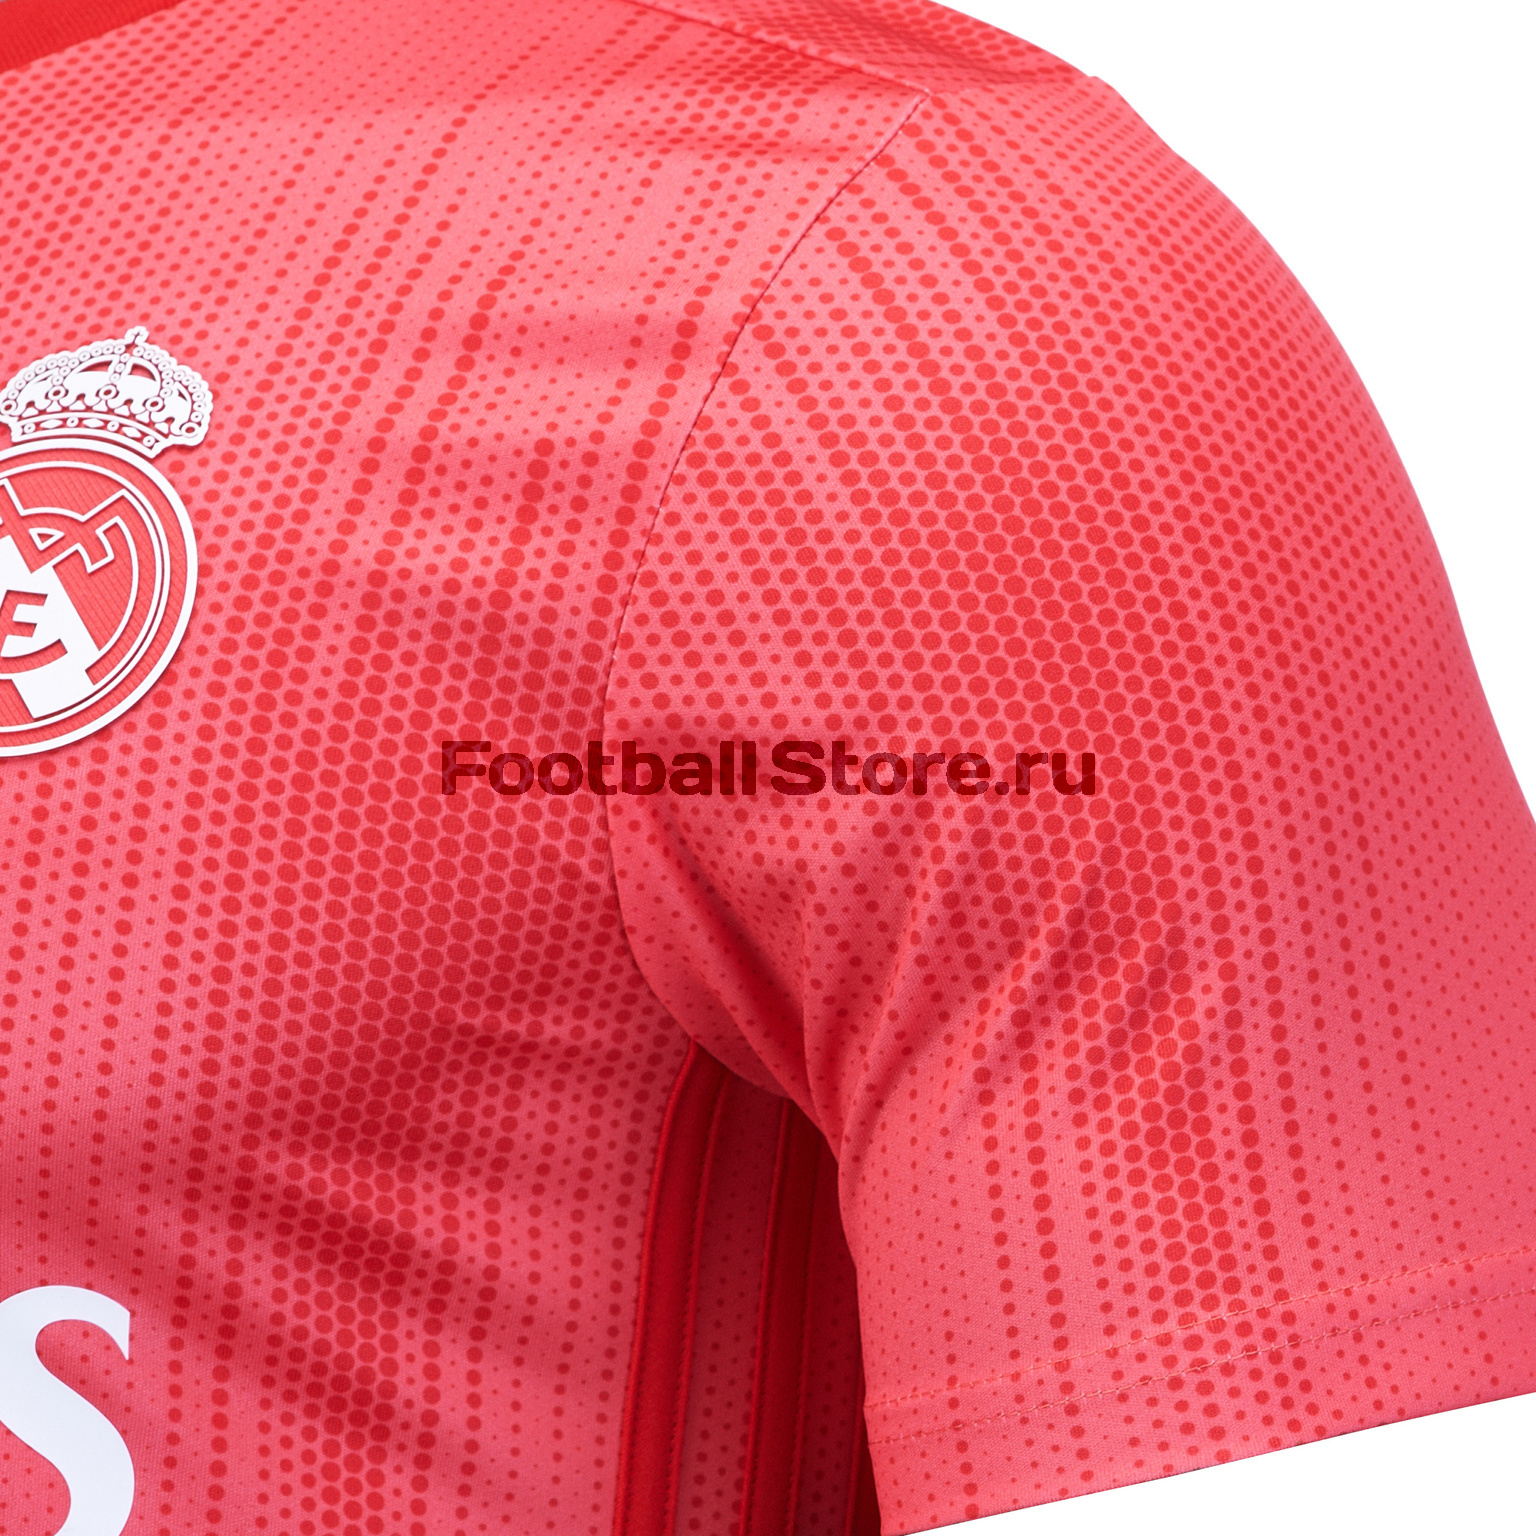 Футболка резервная Adidas Real Madrid 2018/19